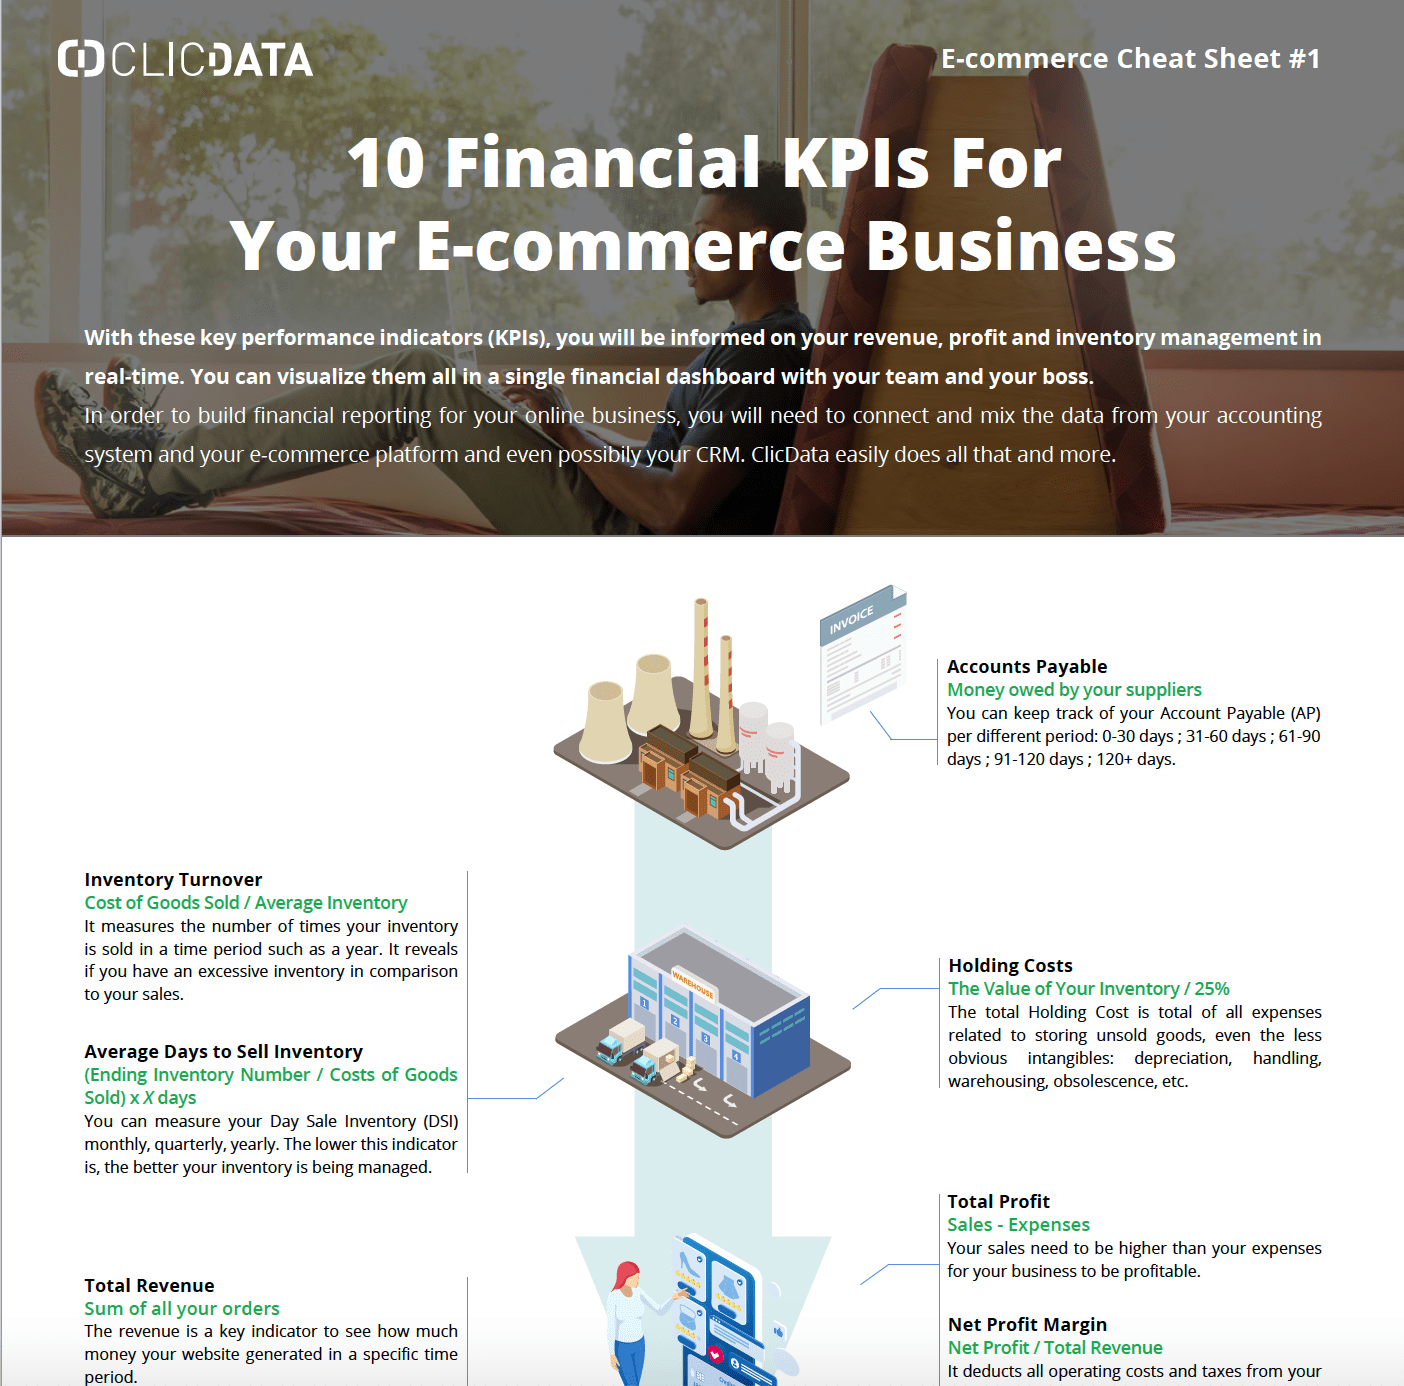 ecommerce-financial-kpis-cheat-sheet